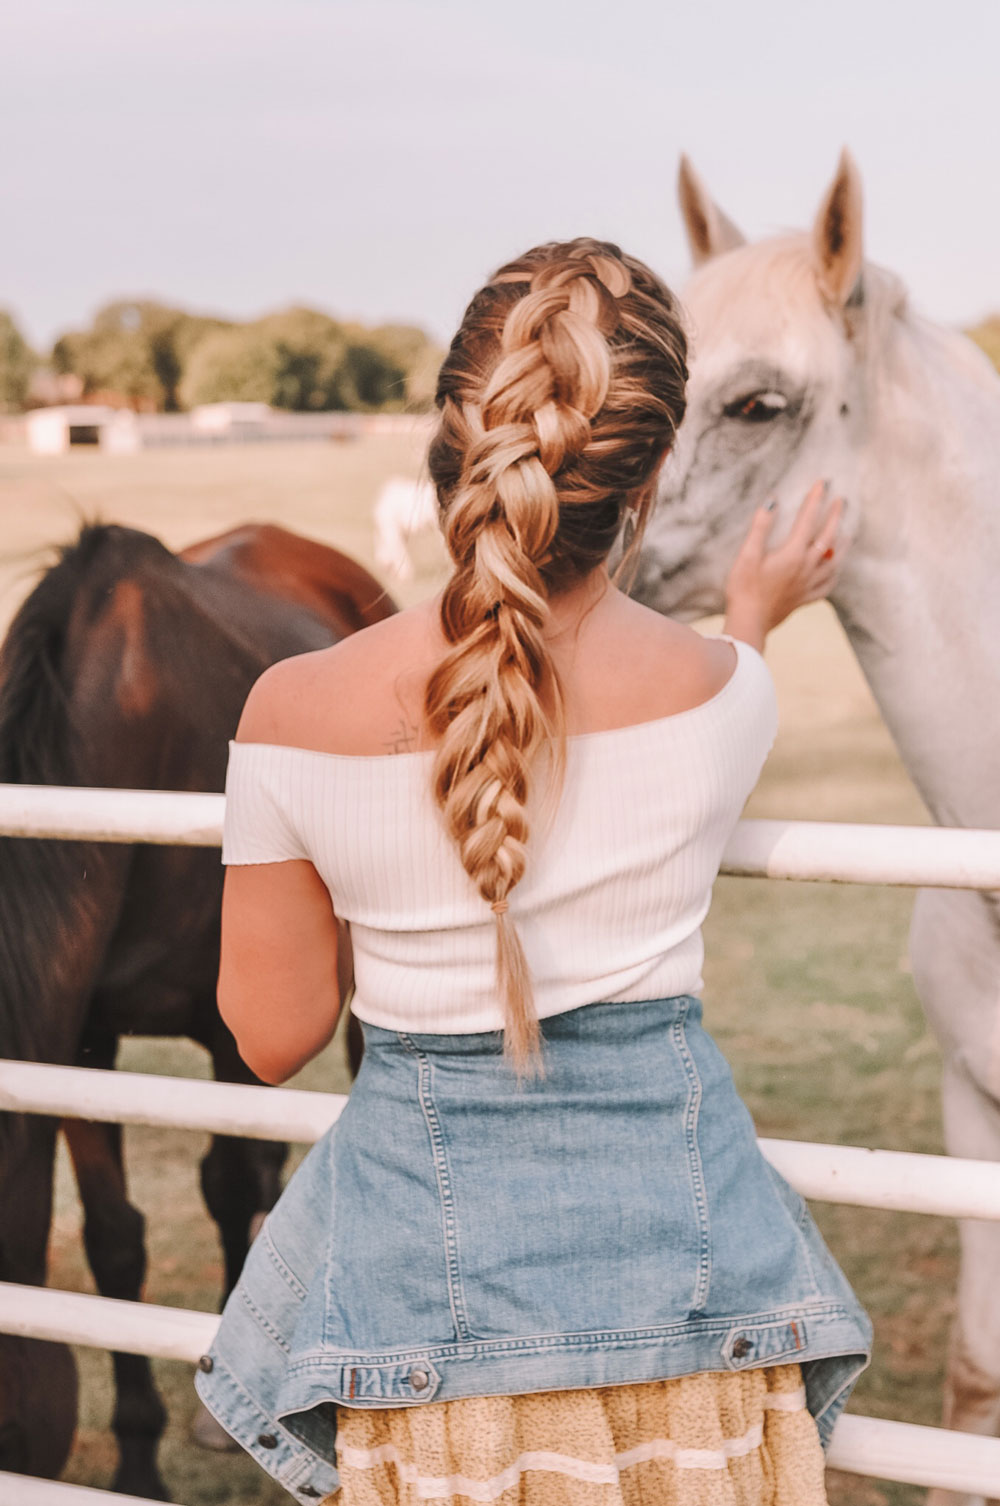 According to OKC blogger Amanda Martin, hand tied extensions make chunky braids much better!